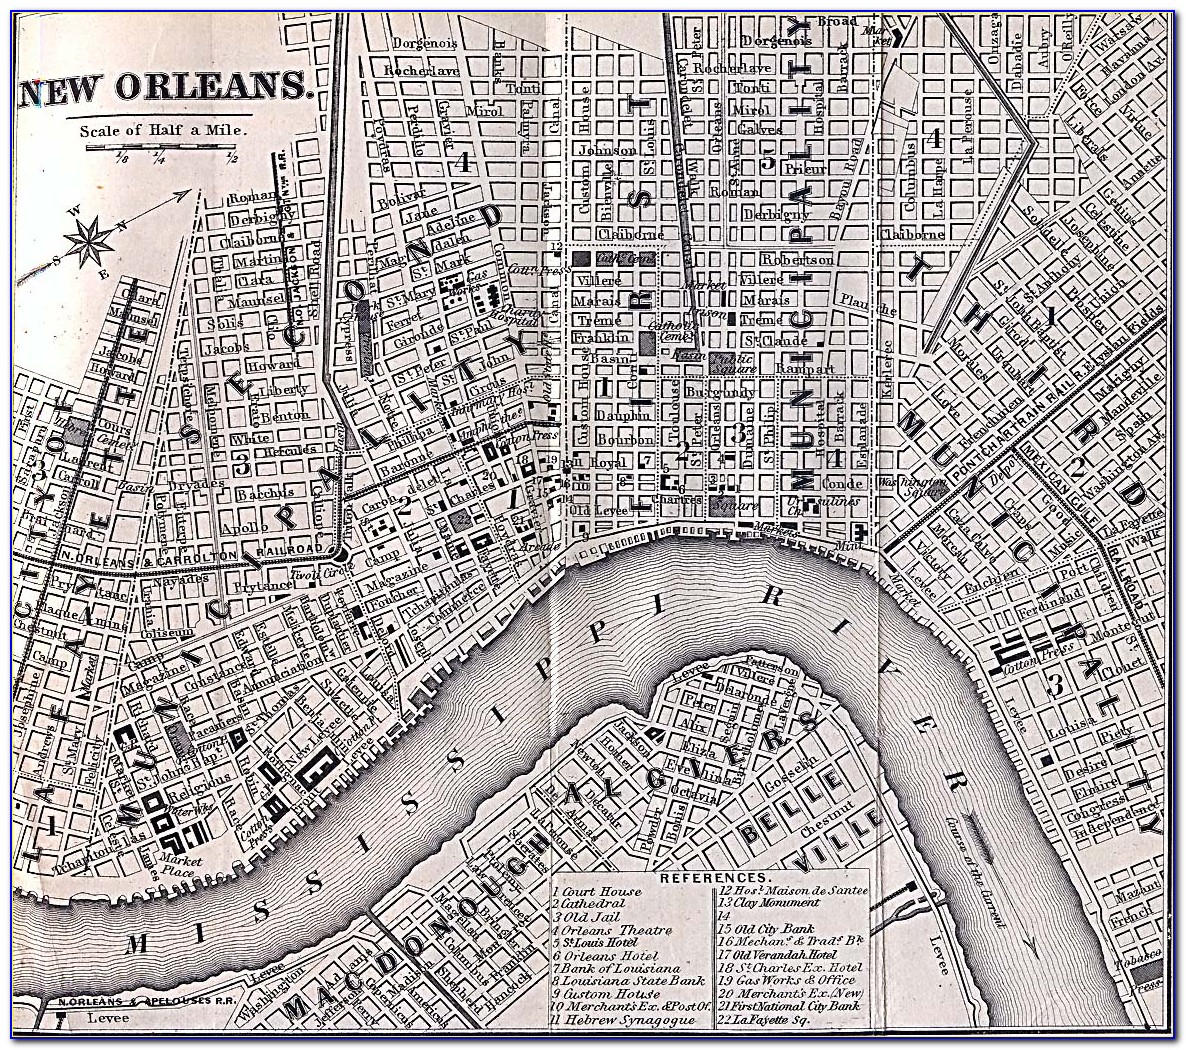 New Orleans Historical Maps